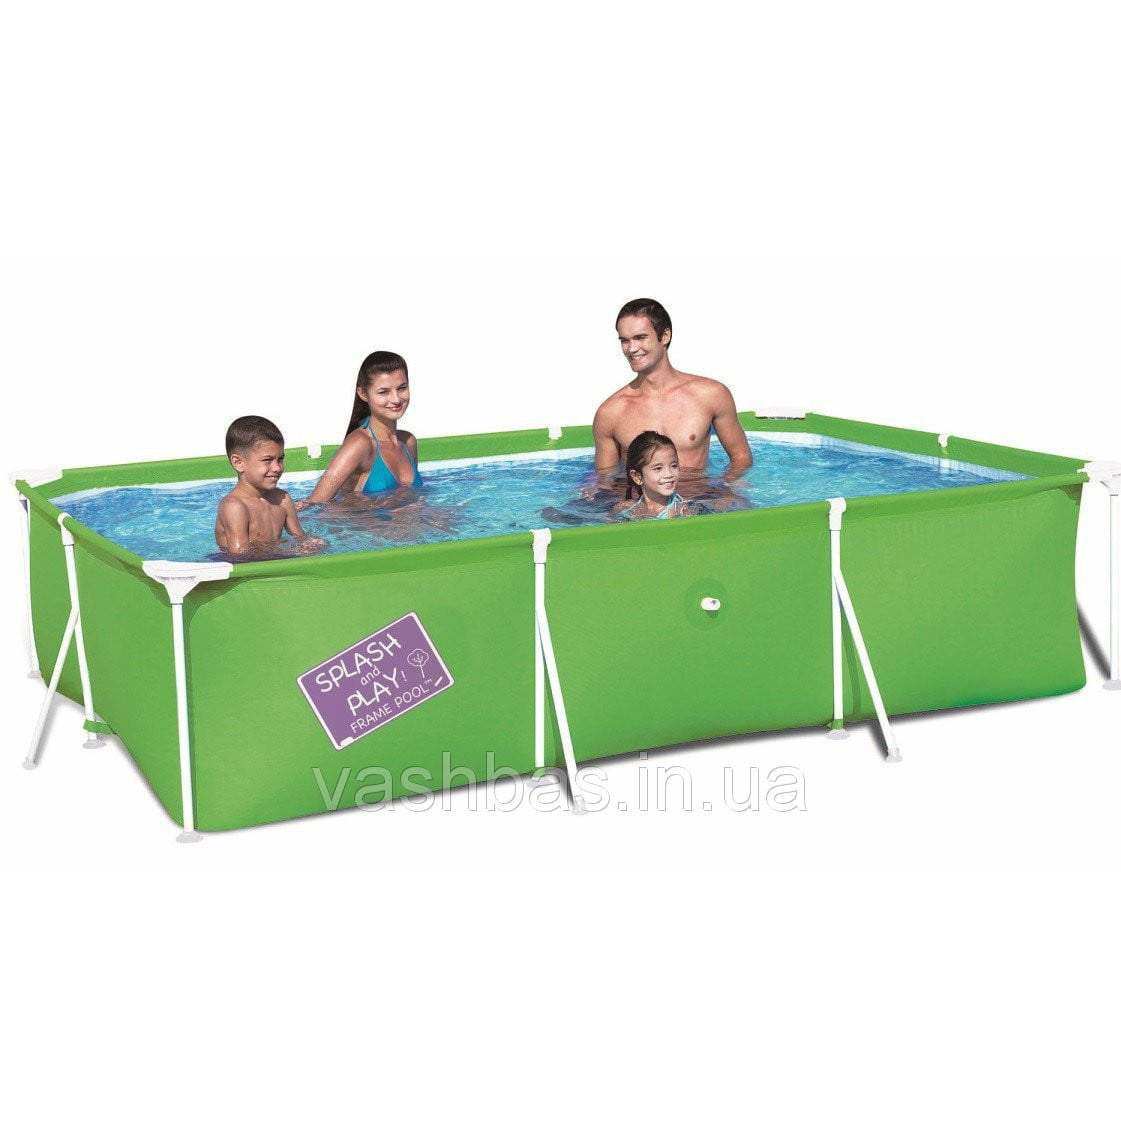 "Bestway 118"" x 79"" x 26""/3.00m x 2.01m x 66cm My First Frame Pool - rafplay"